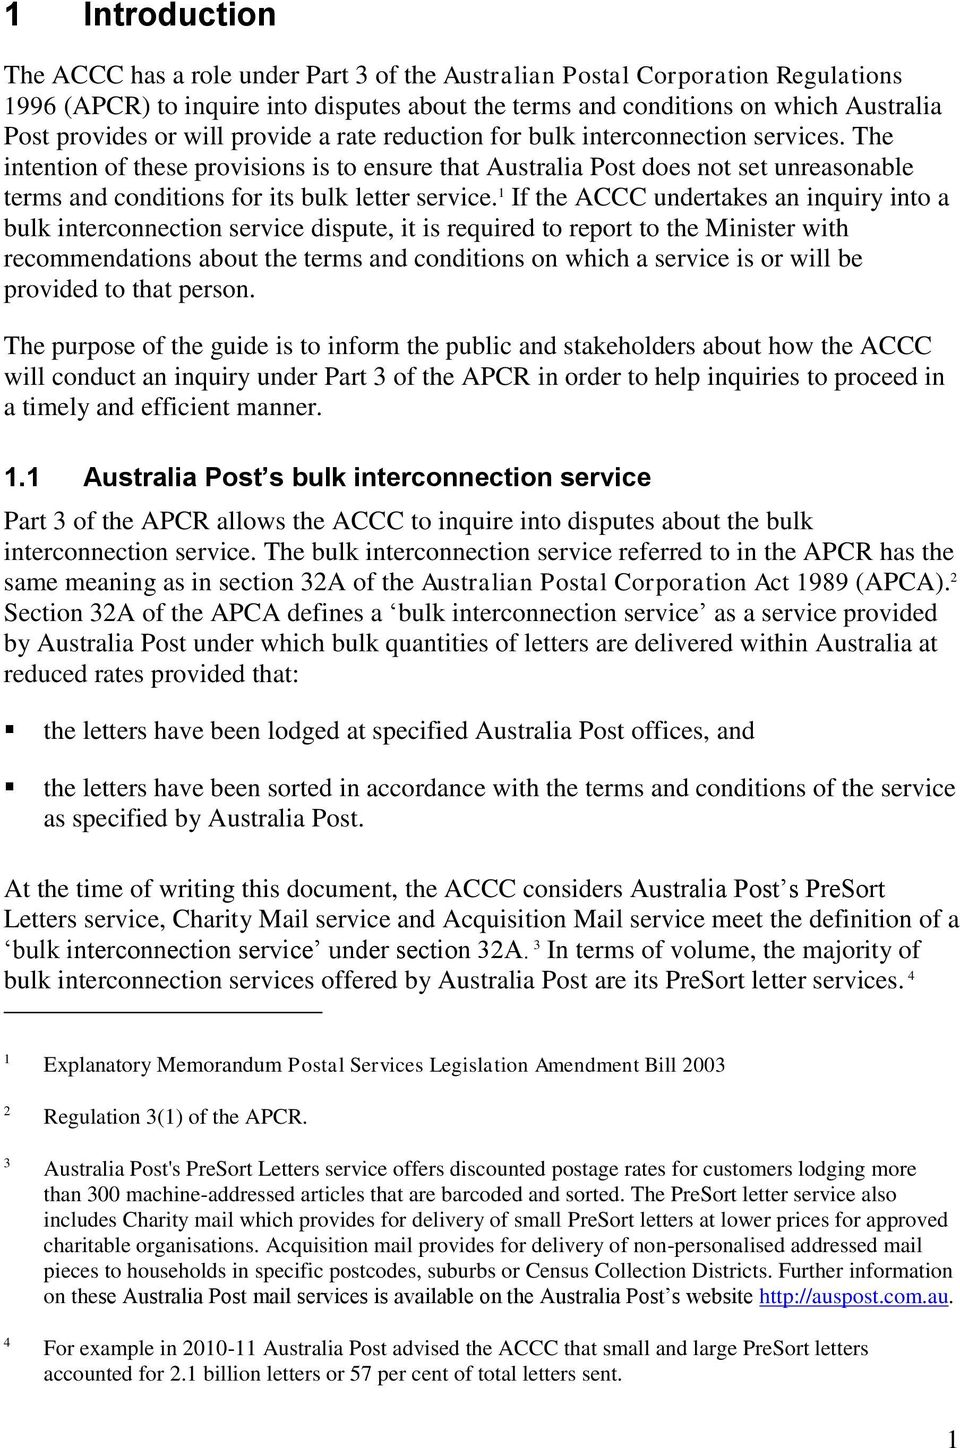 The intention of these provisions is to ensure that Australia Post does not set unreasonable terms and conditions for its bulk letter service.